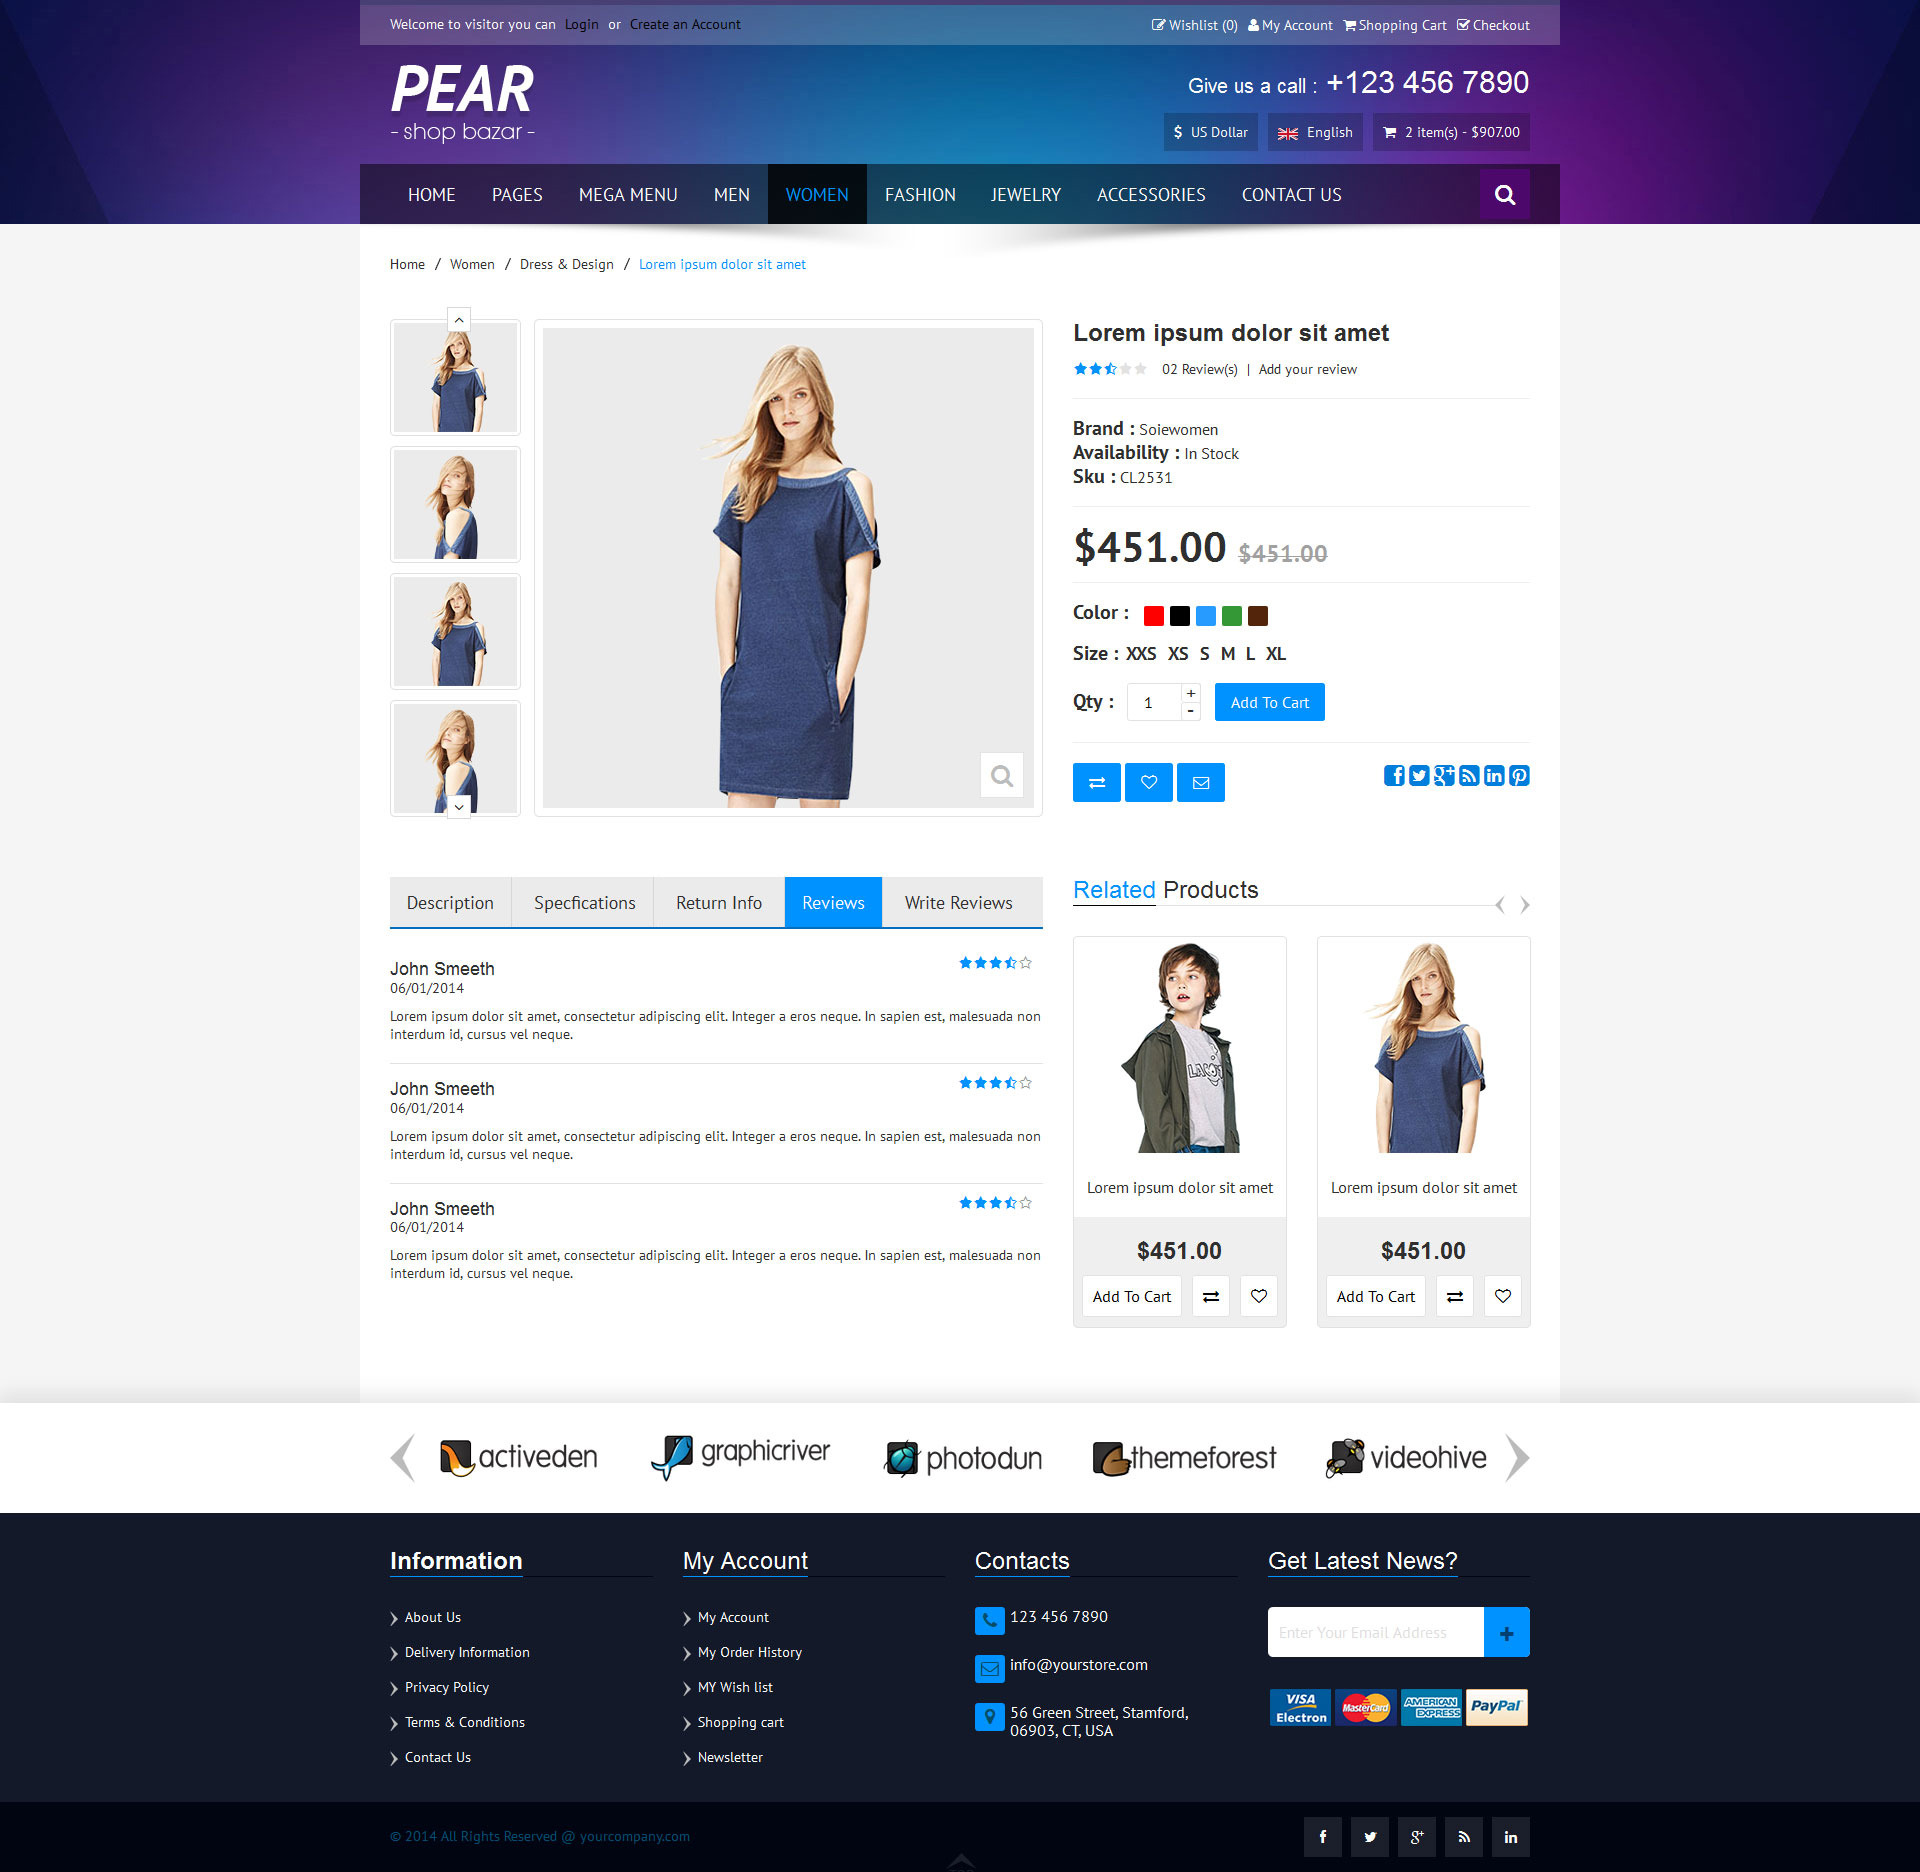 Pear - Responsive E-Commerce HTML Template V1.1